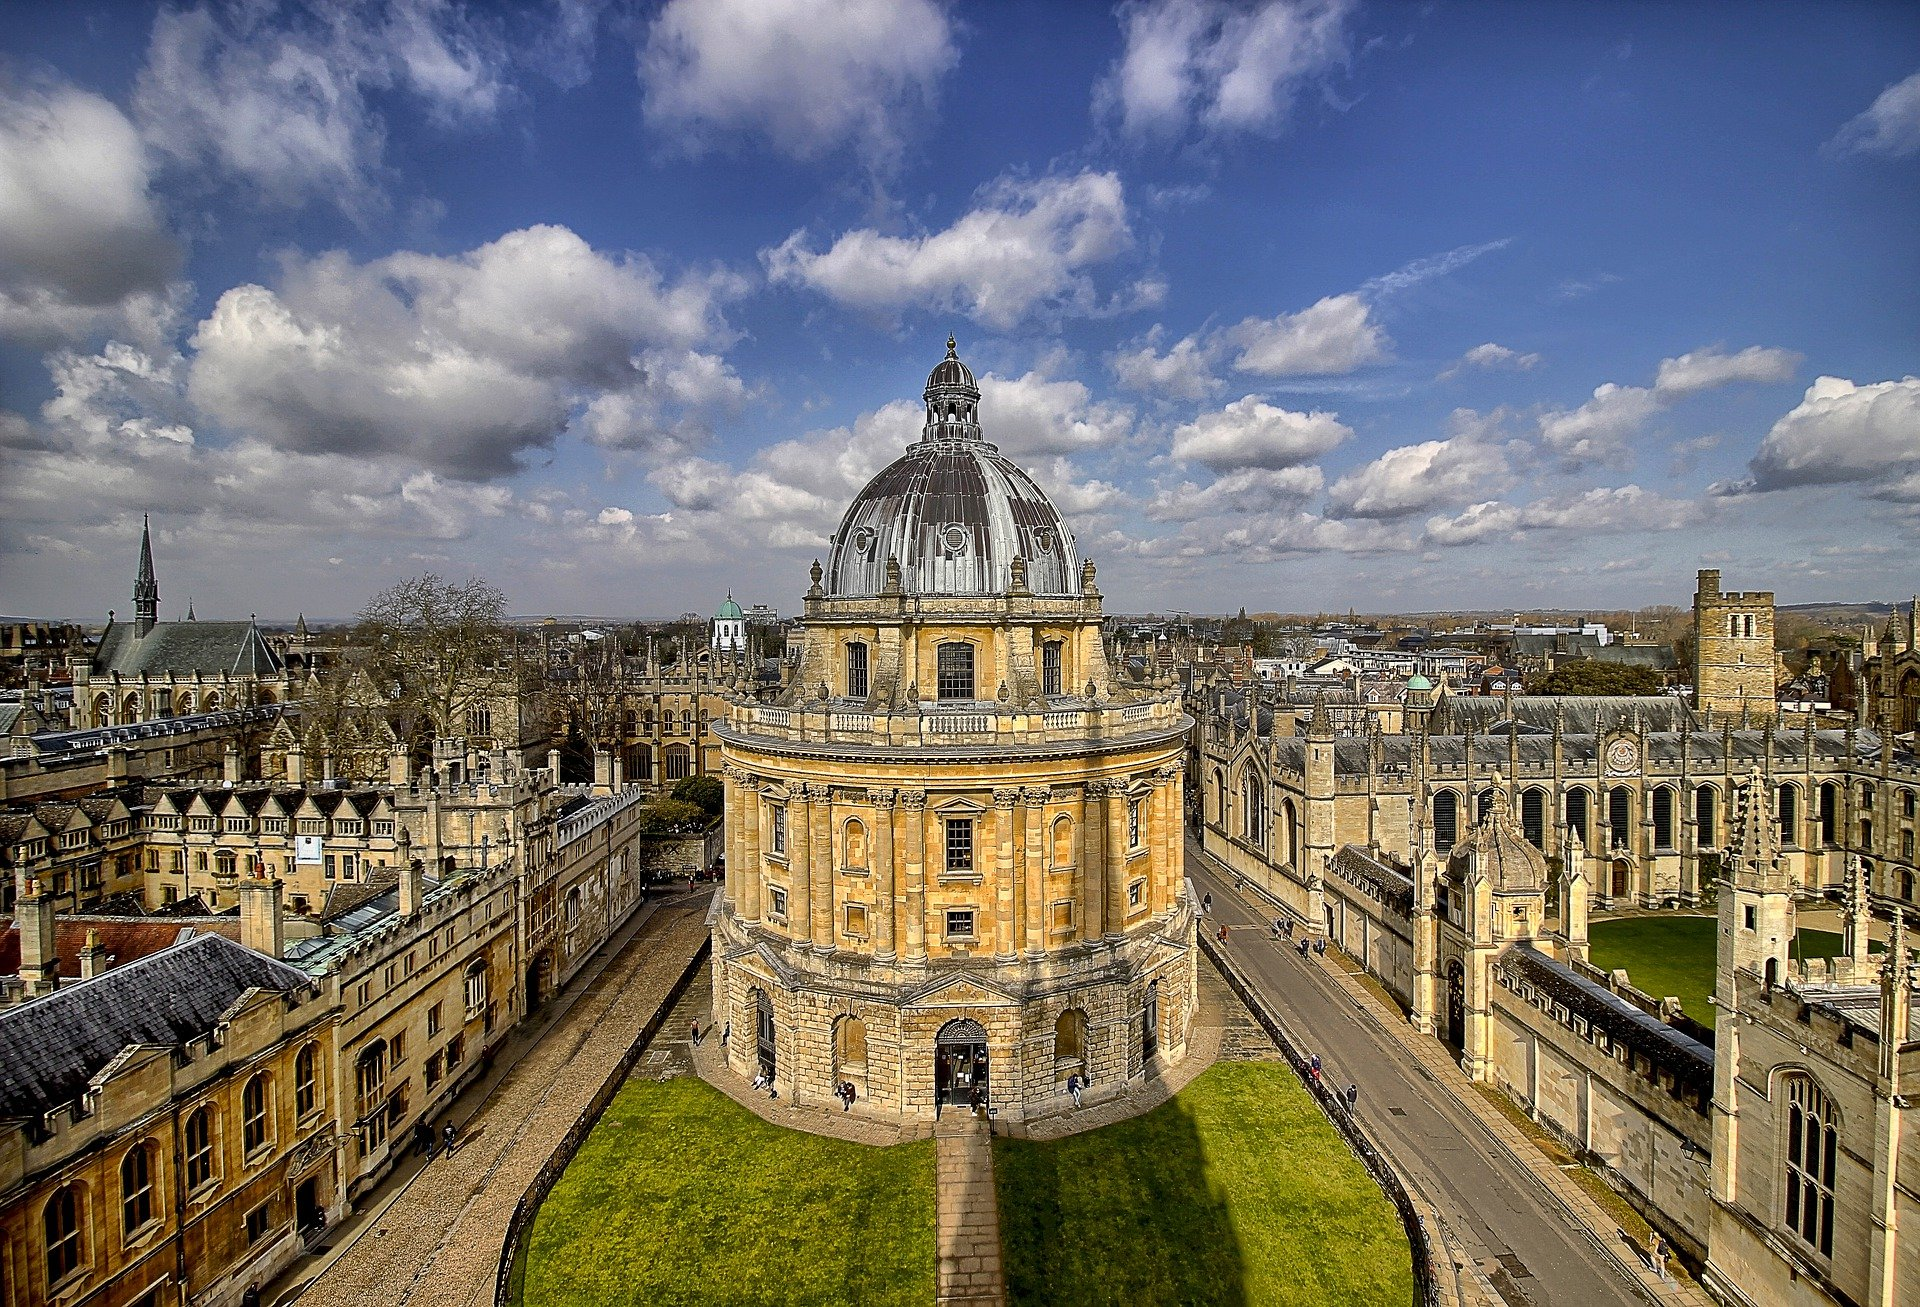 Oxford University: Asbestos surveys have been carried out at Oxford education buildings